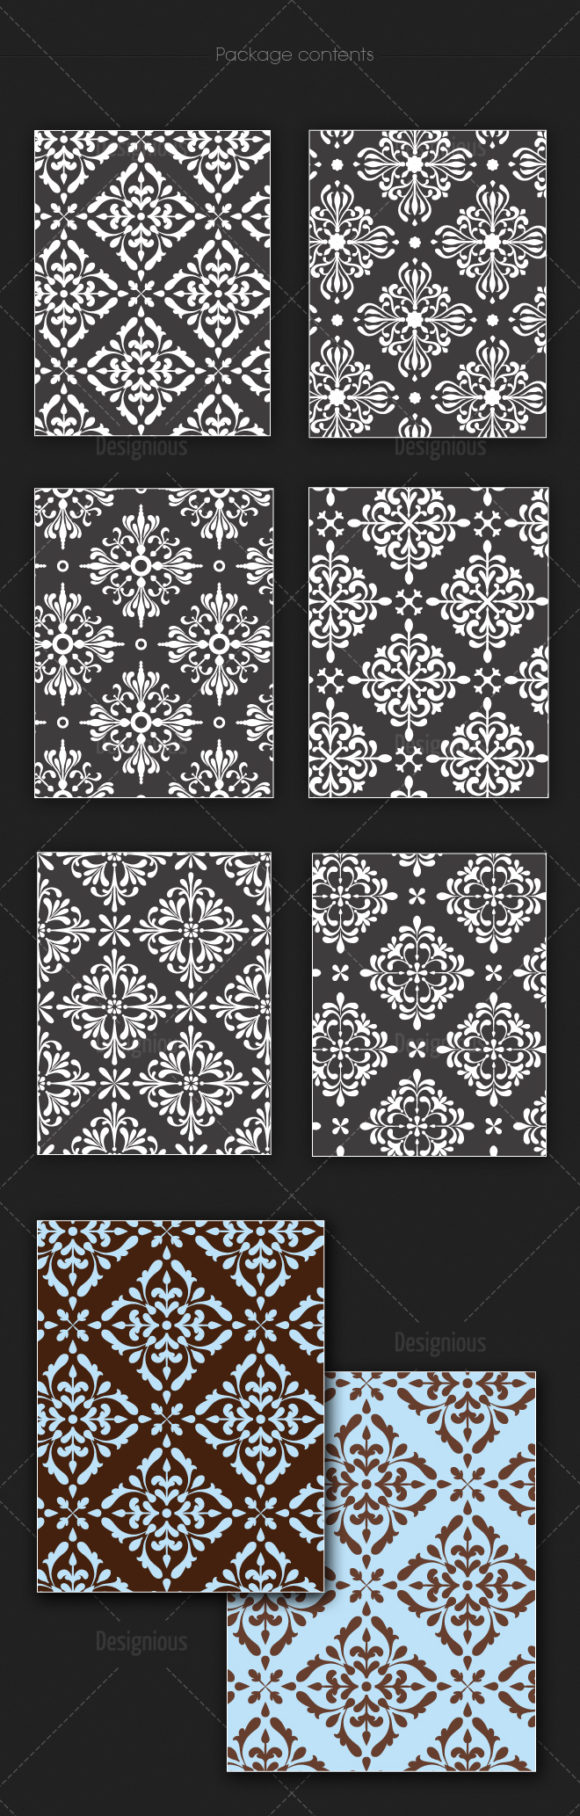 Seamless Patterns Vector Pack 140 products seamless patterns vector pack 140 large